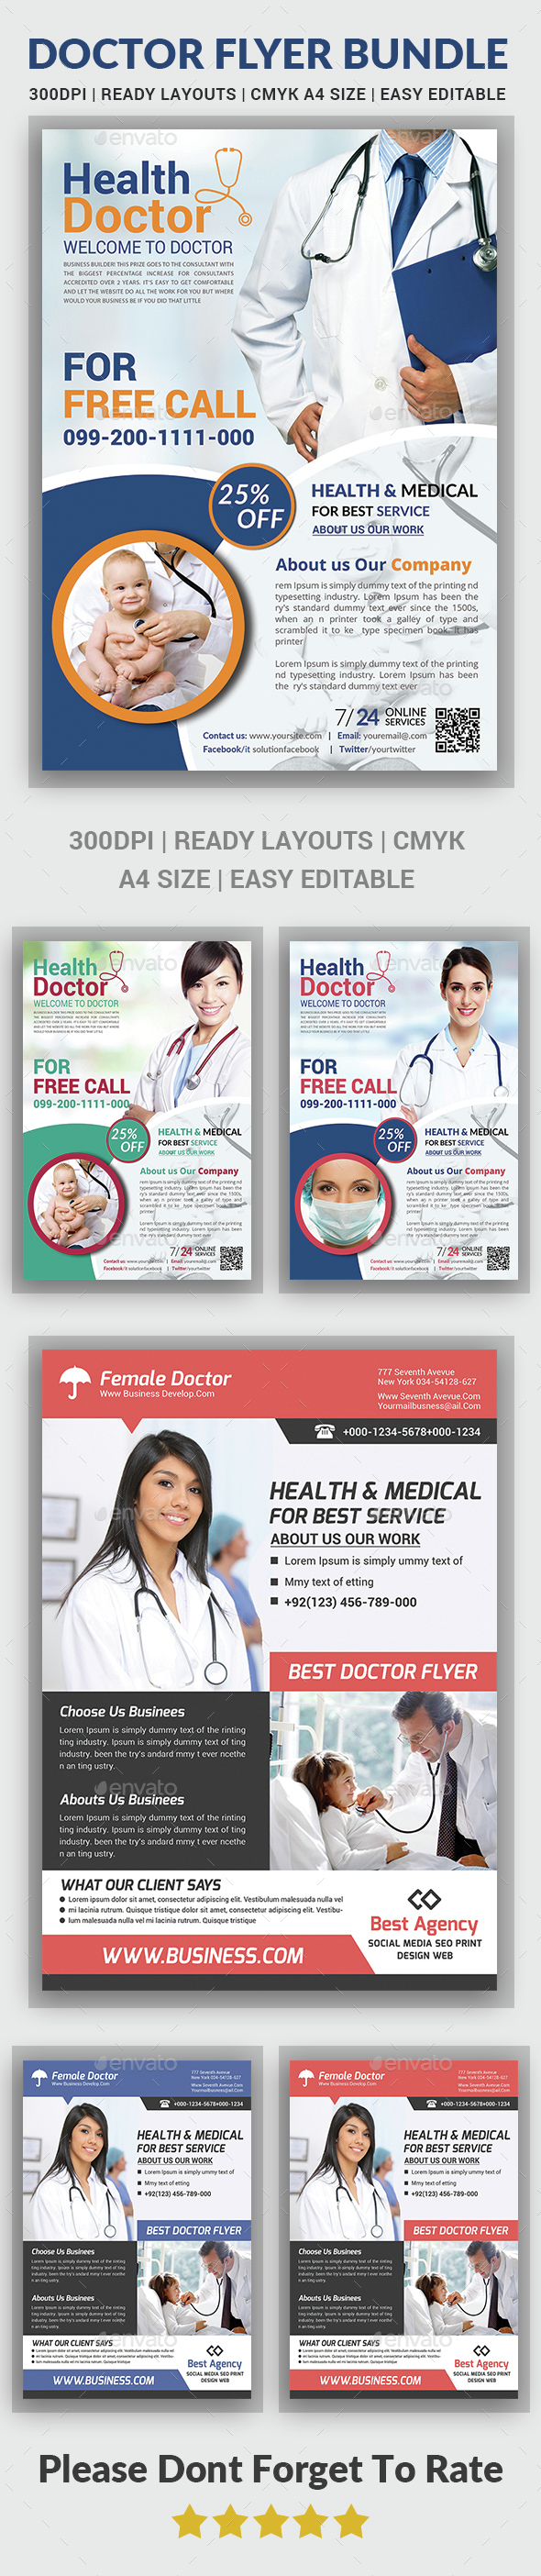 Health & Medical Doctors Flyer Bundle - Corporate Flyers